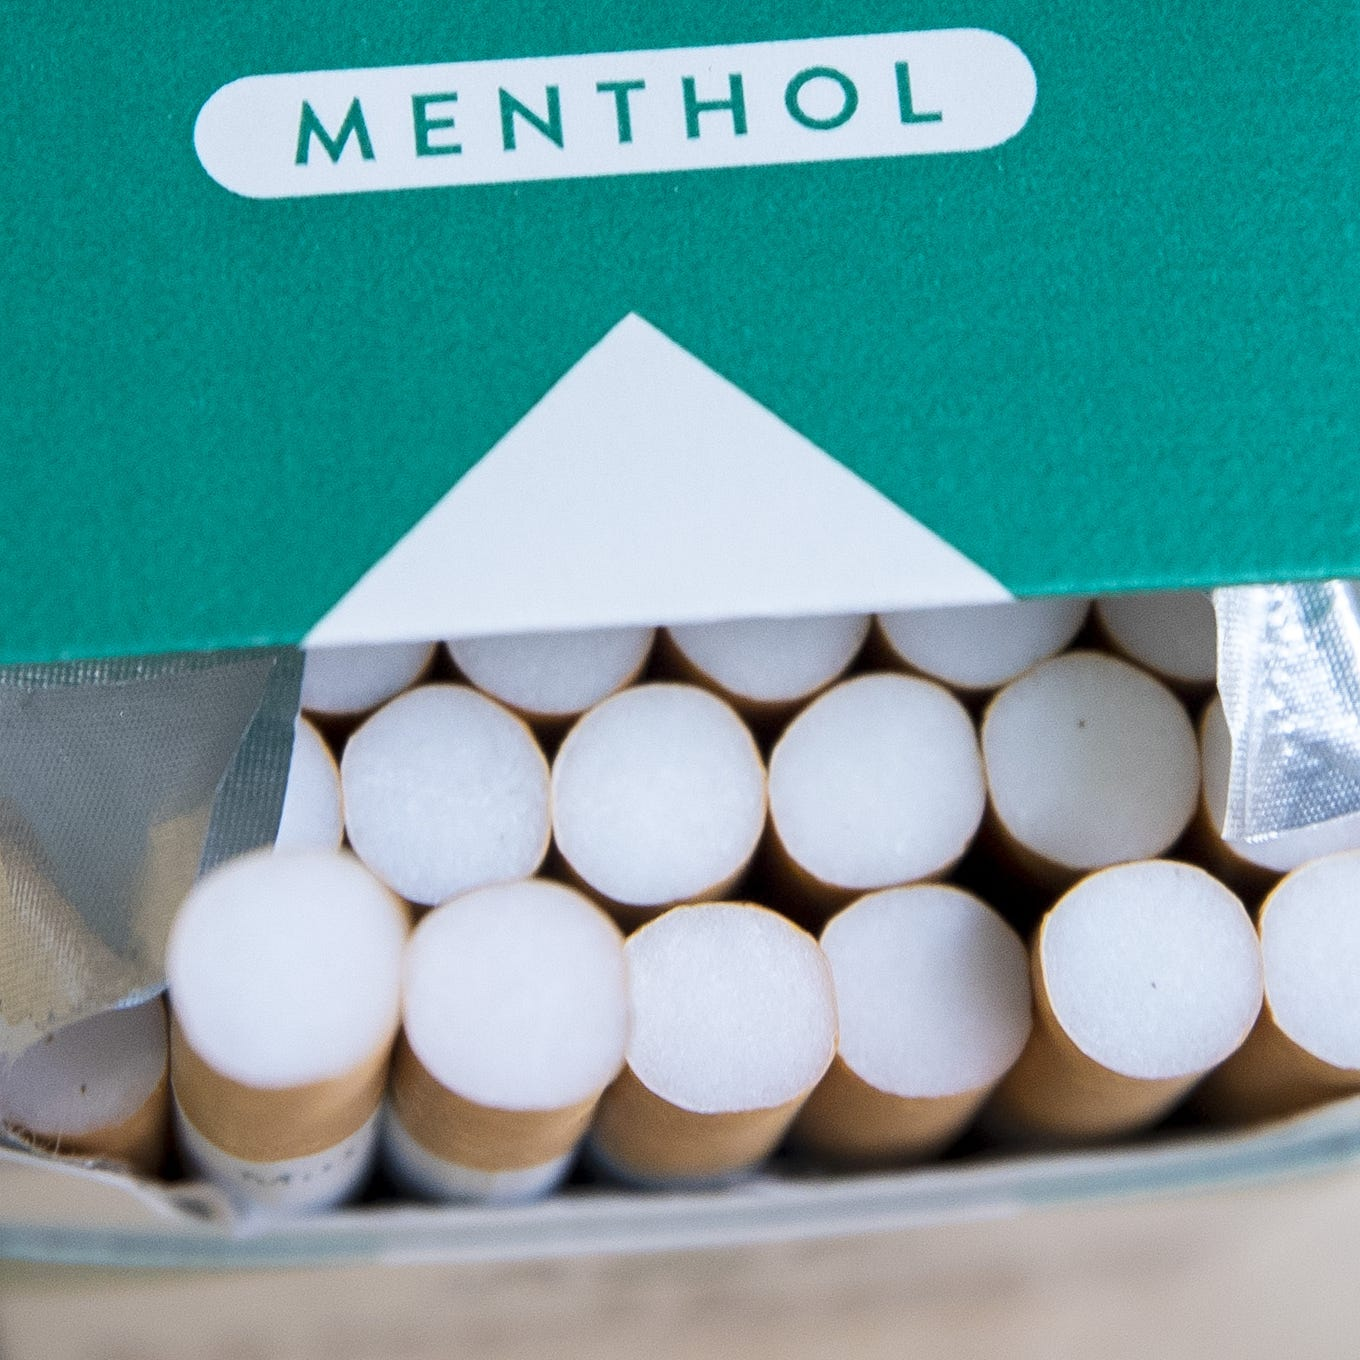 Our View: Enforce current laws before banning menthol cigarettes